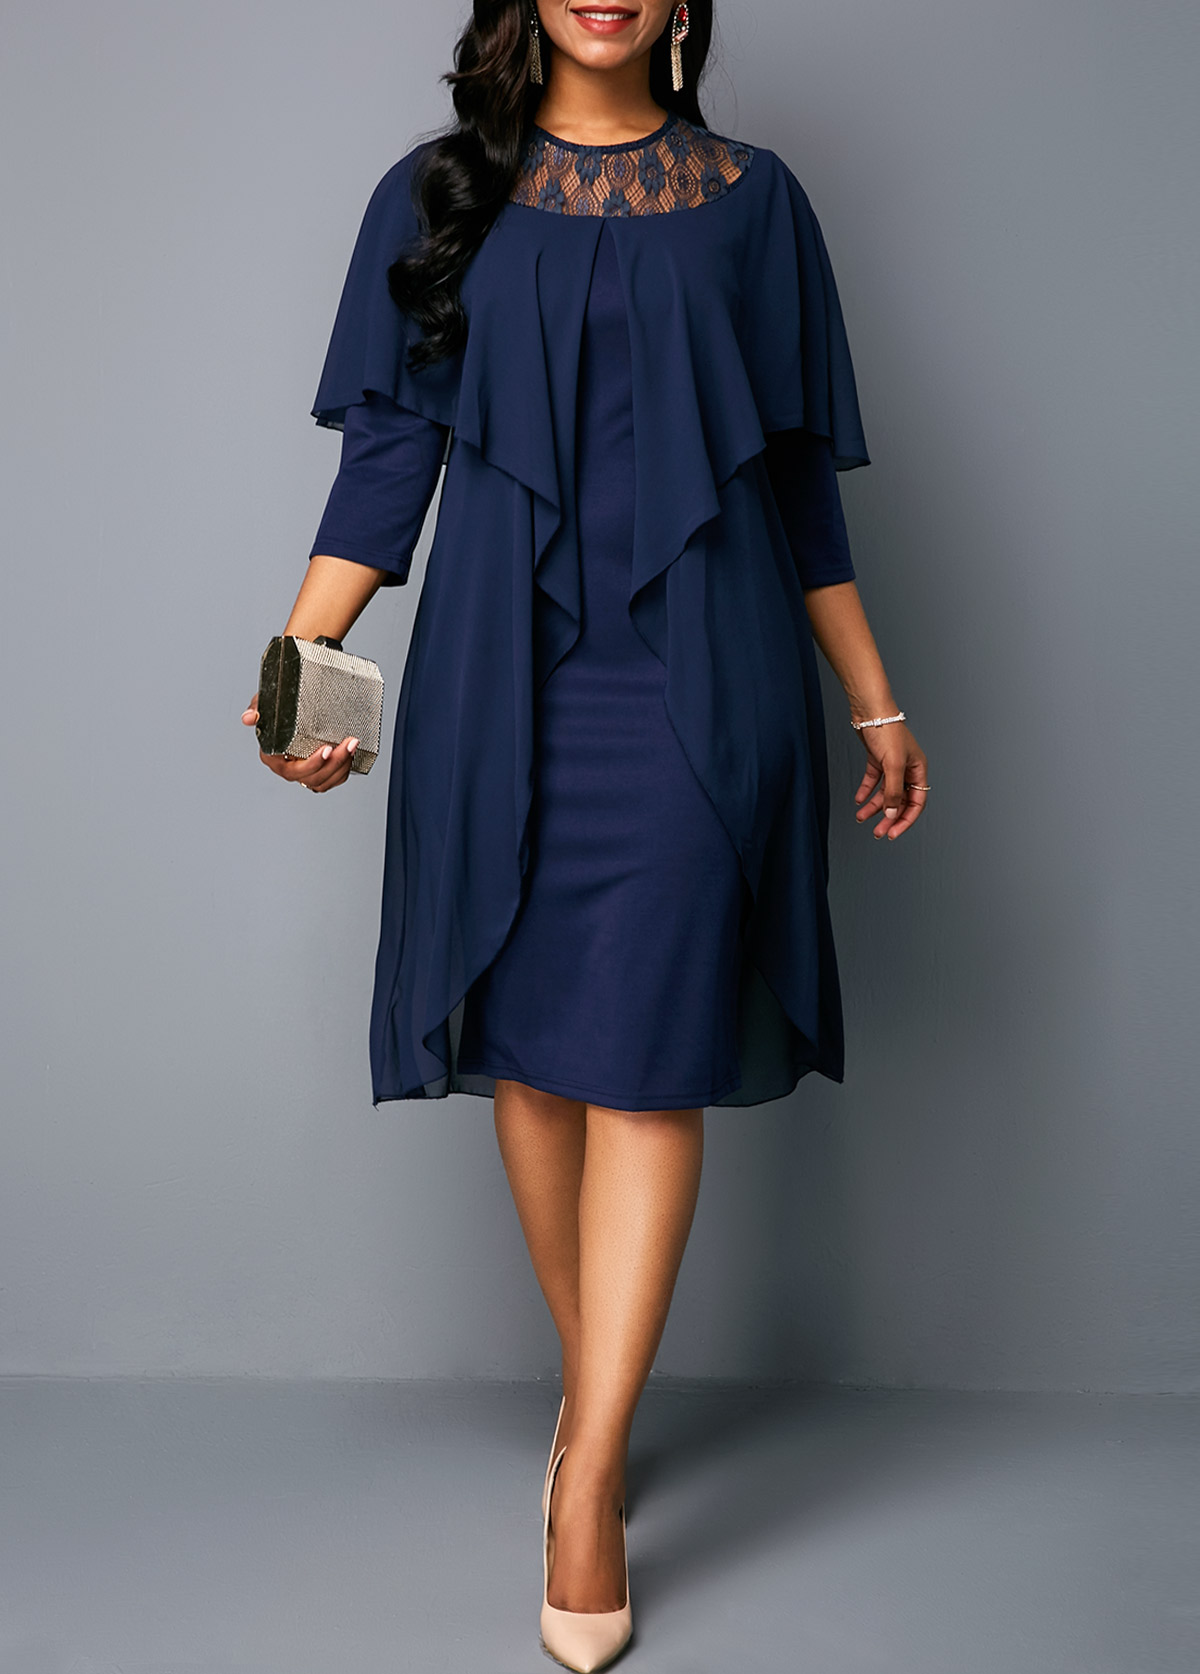 58c7b5accb2 Three Quarter Sleeve Round Neck Chiffon Dress